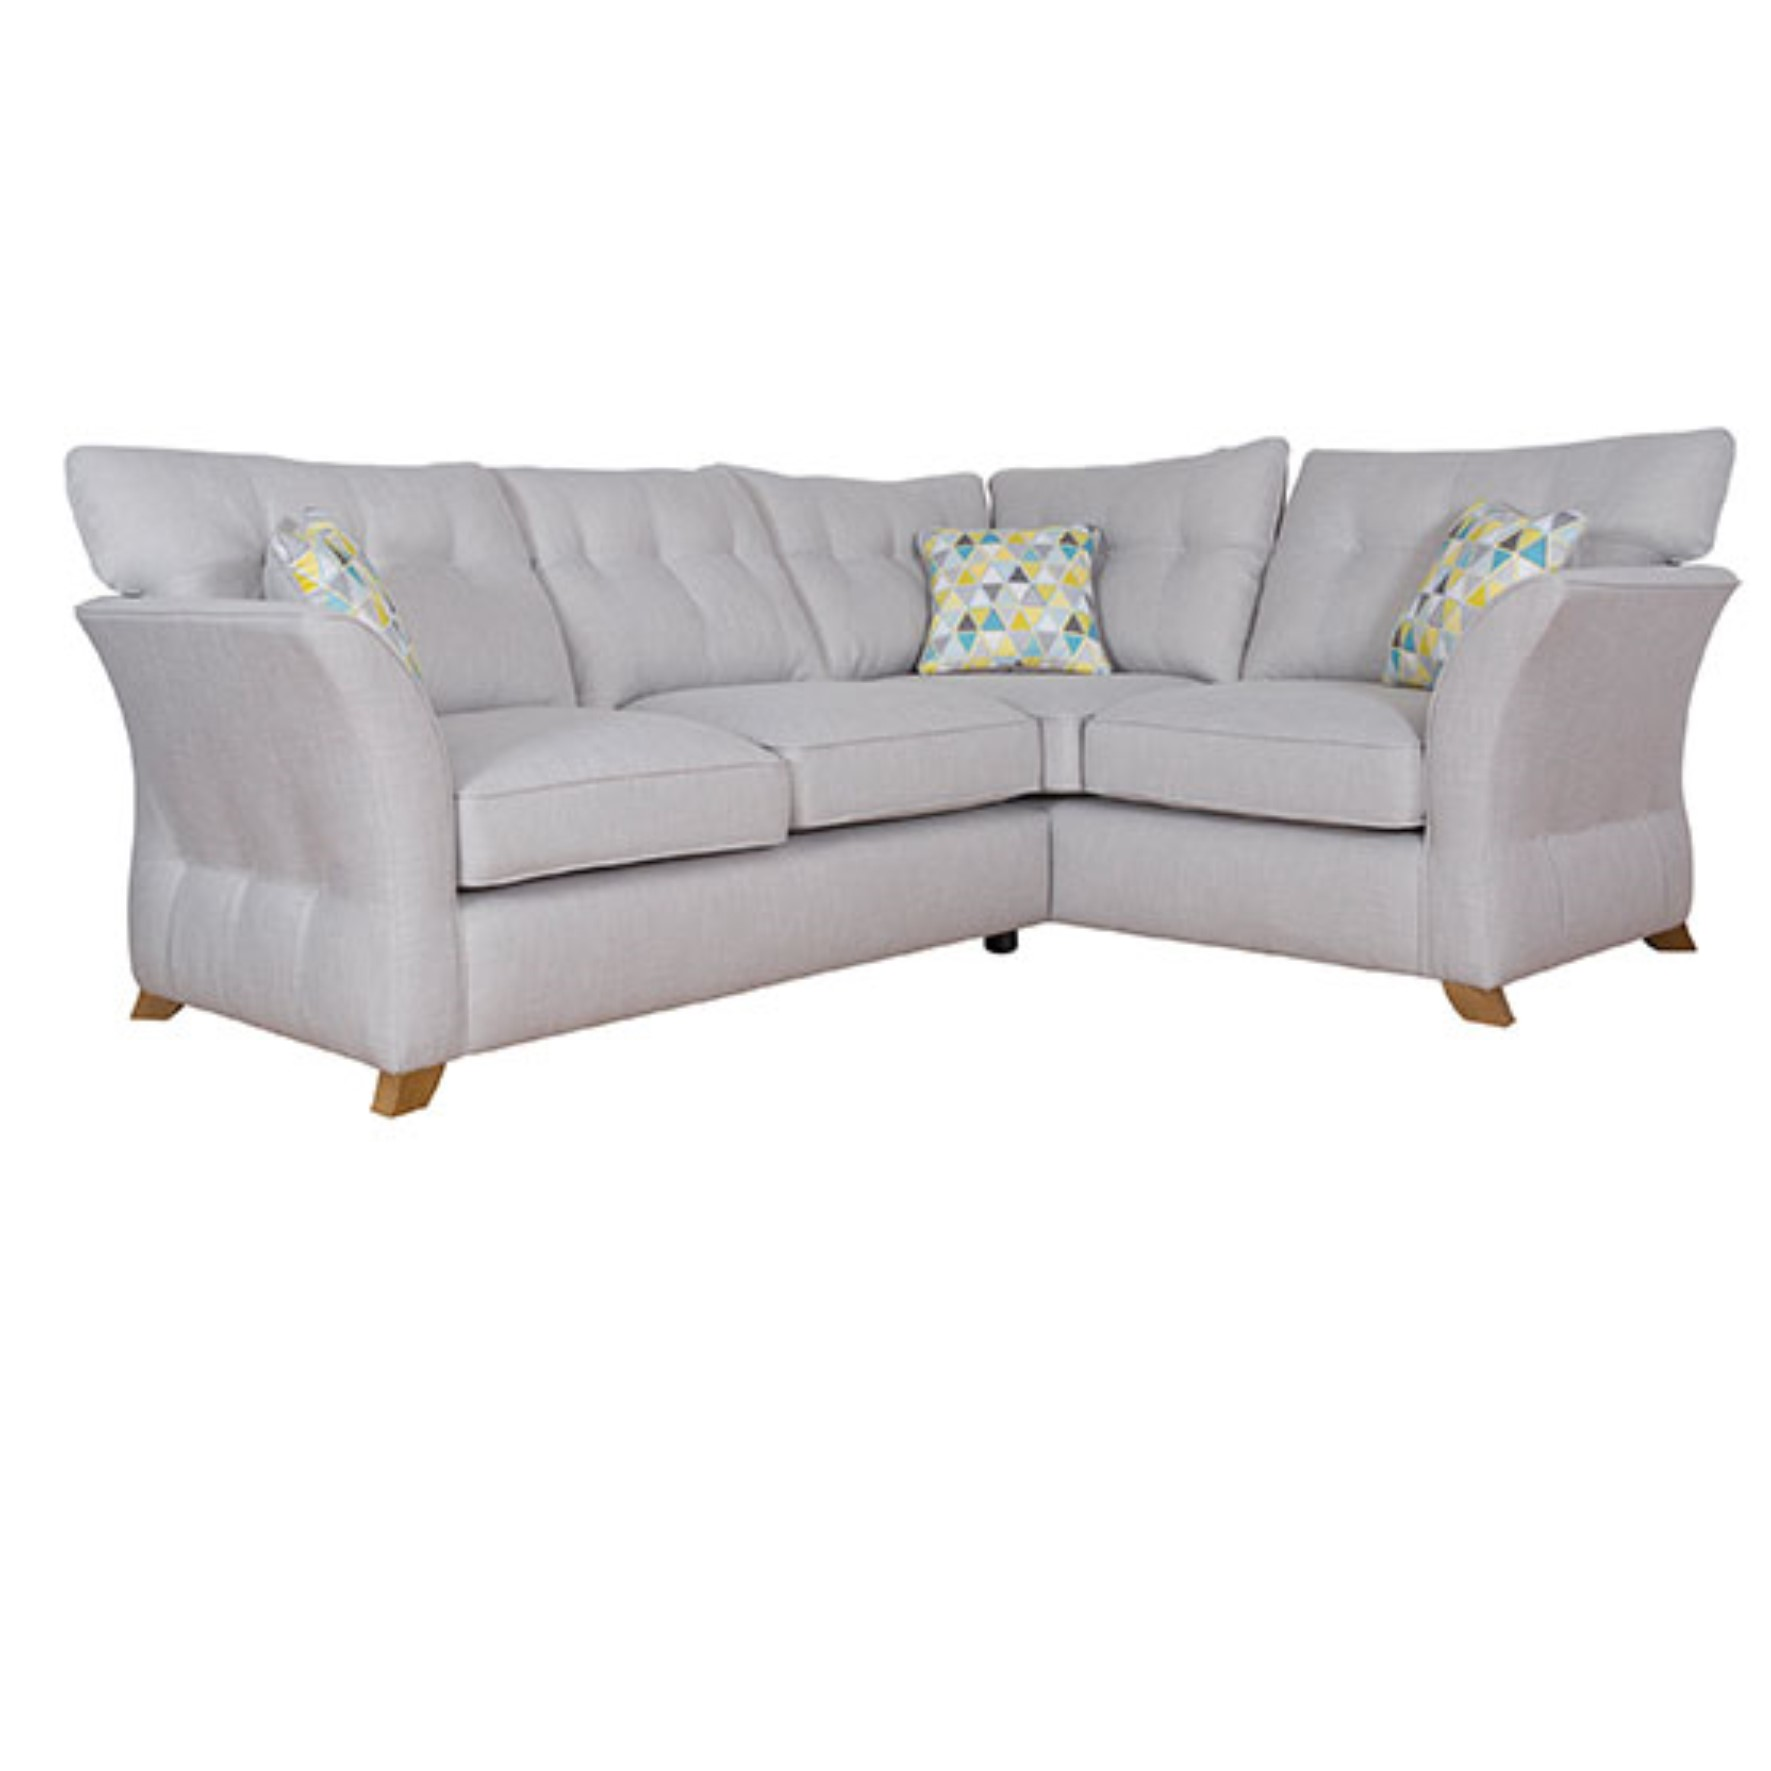 Perth Sofa Collection